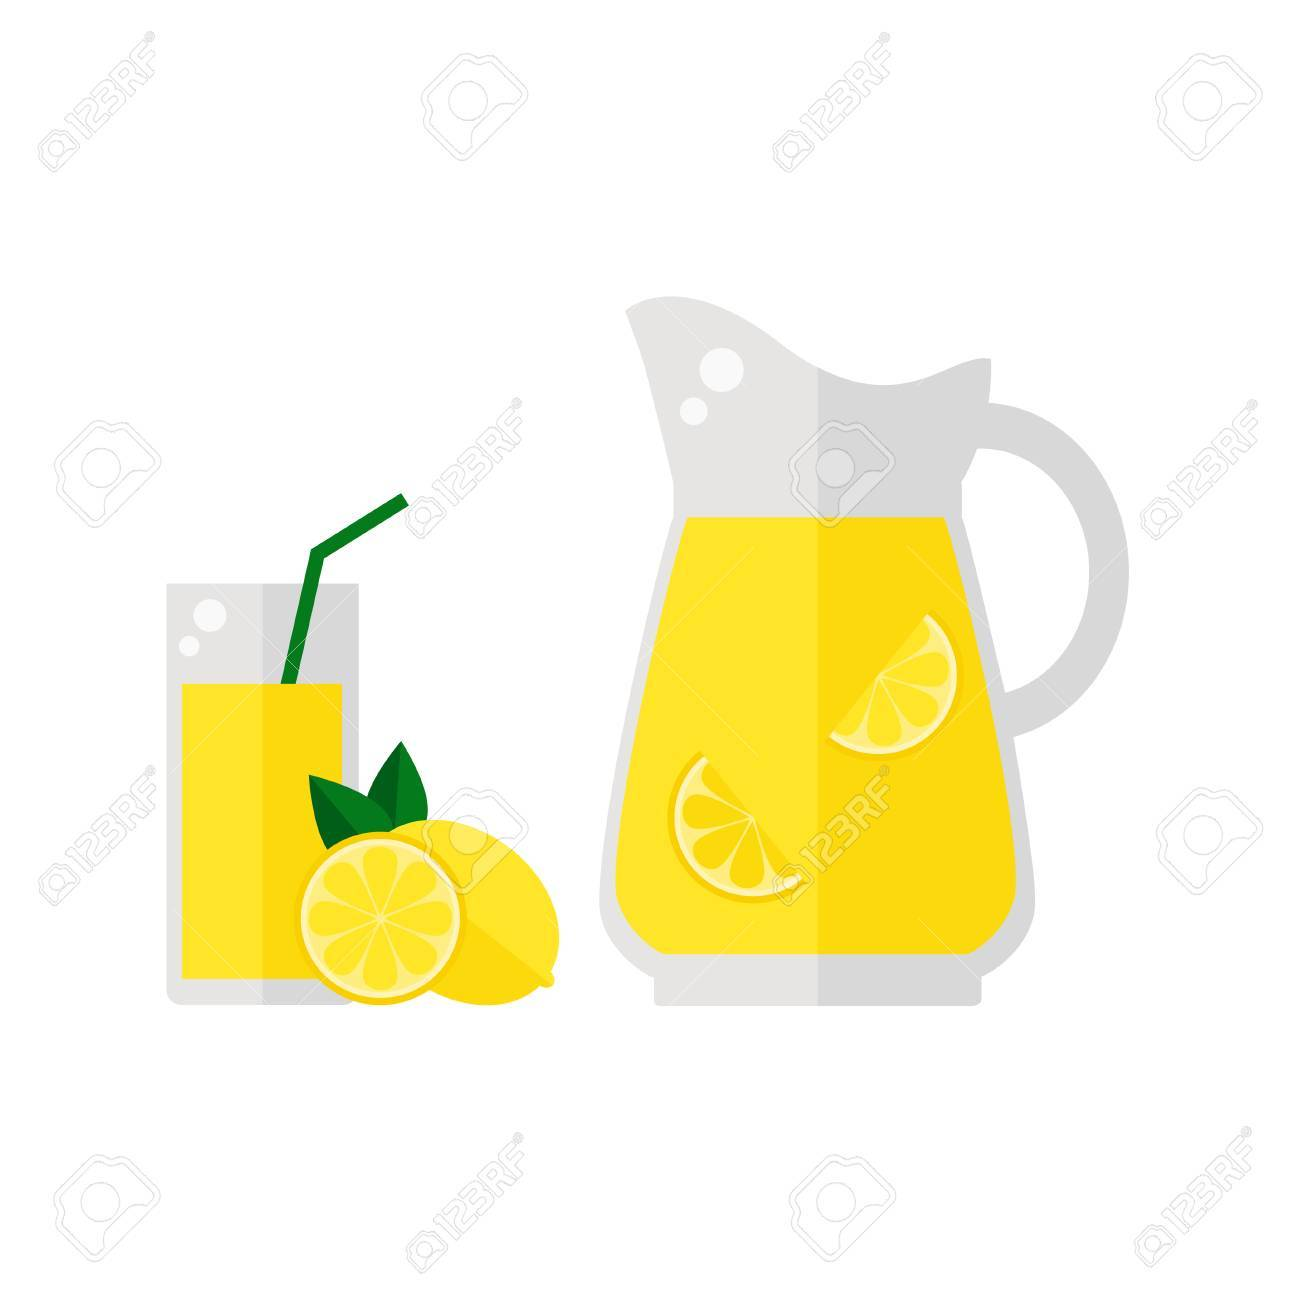 hight resolution of 1300x1300 lemonade juice icon isolated on white background glass